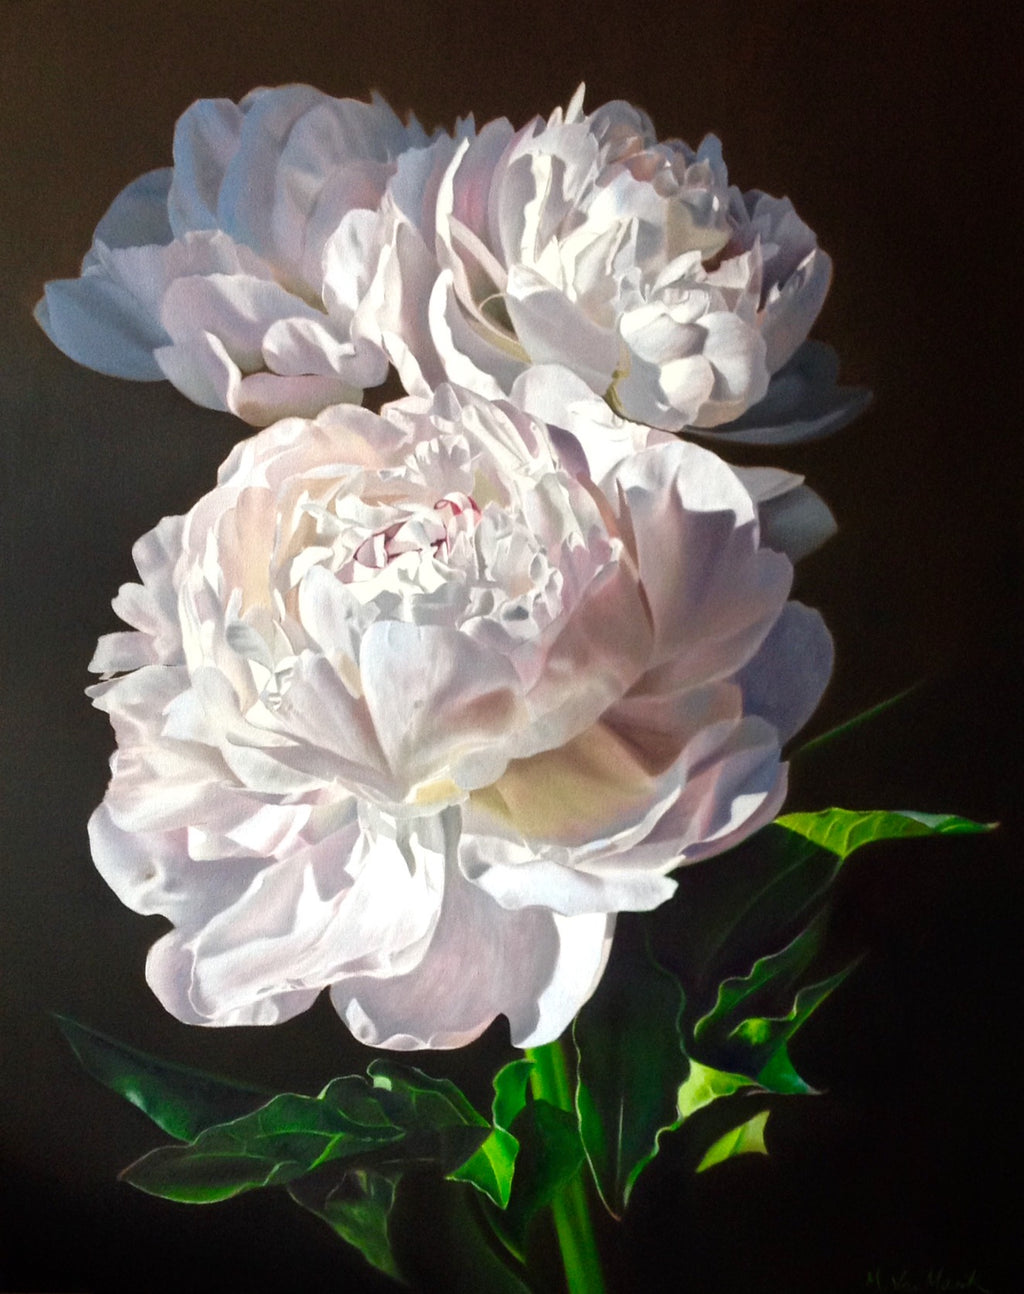 White Peonies -Limited Edition Signed Print